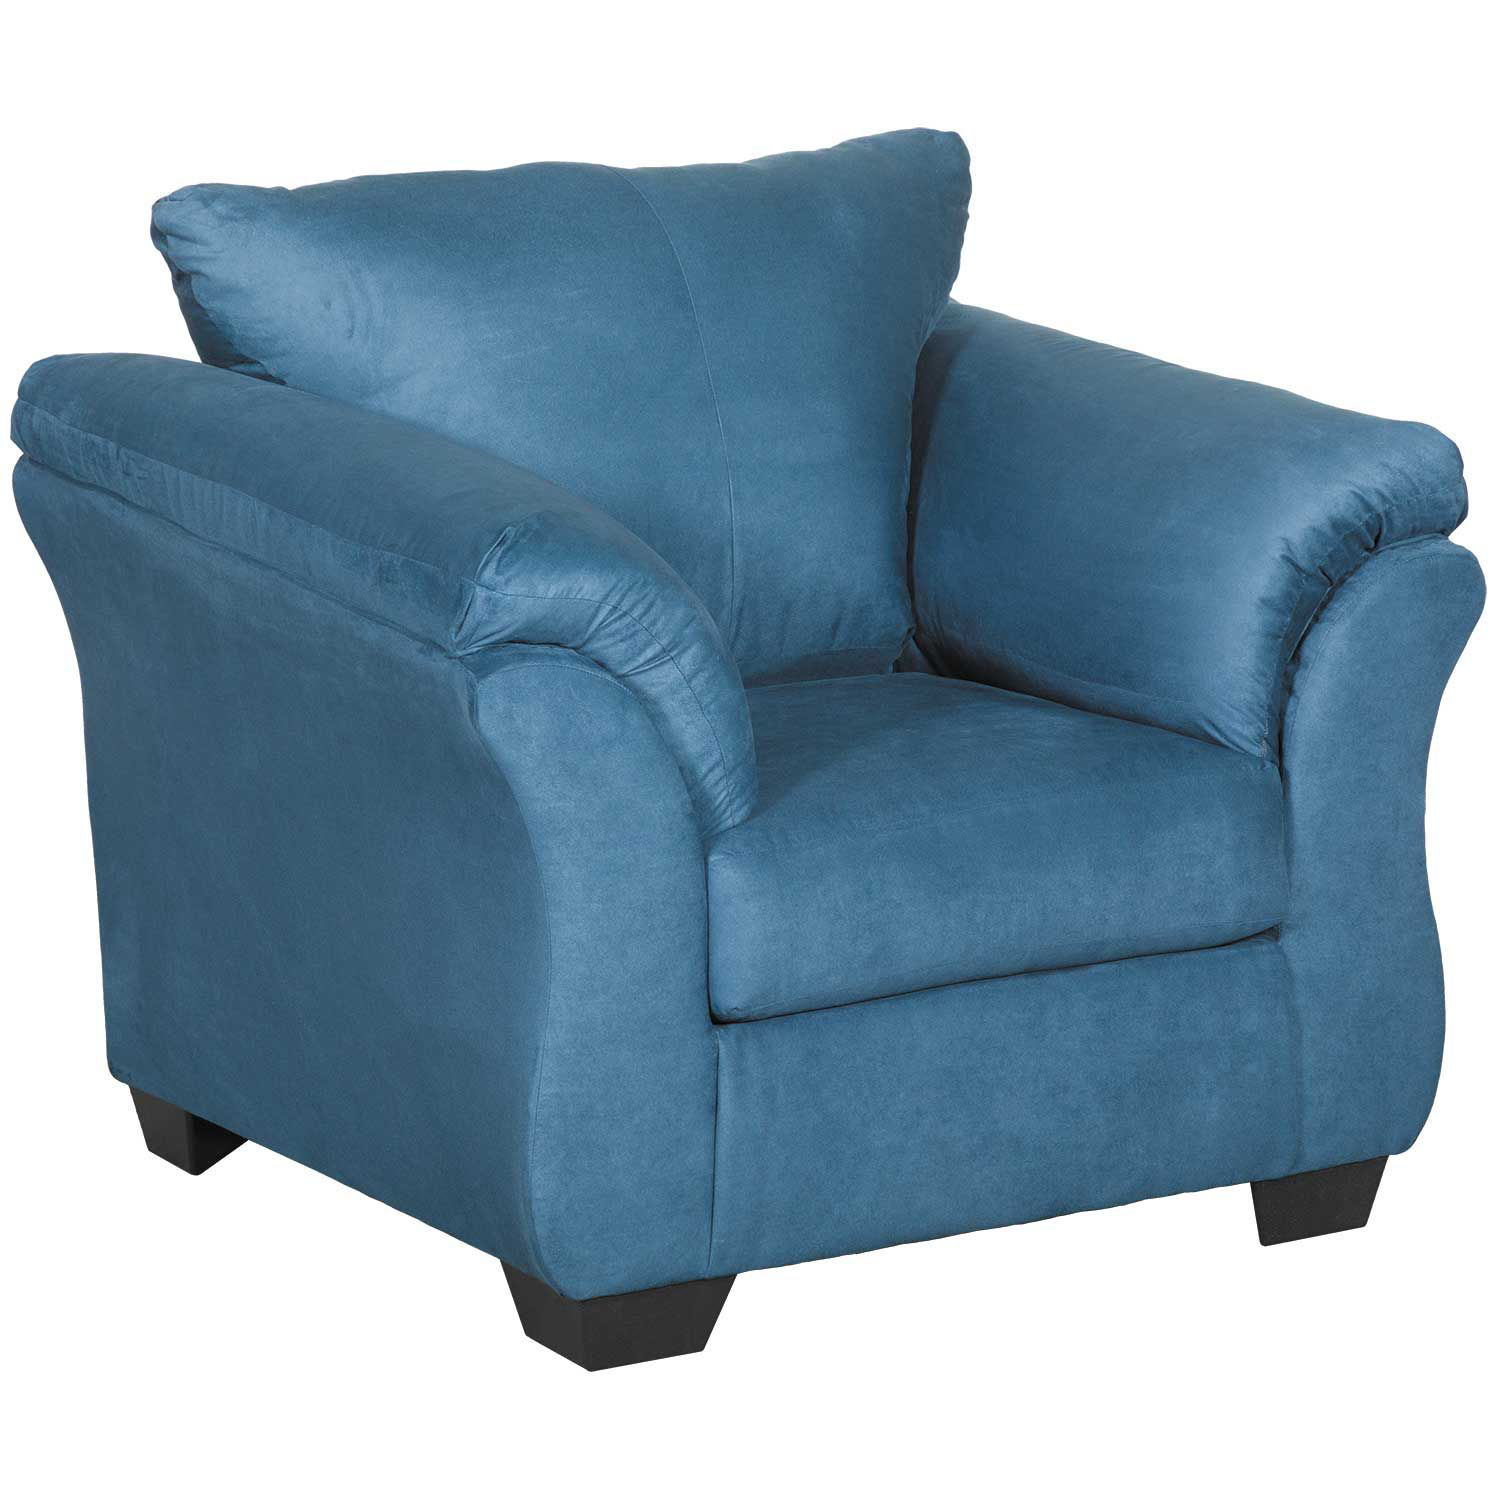 Merveilleux Picture Of Darcy Dark Blue Chair